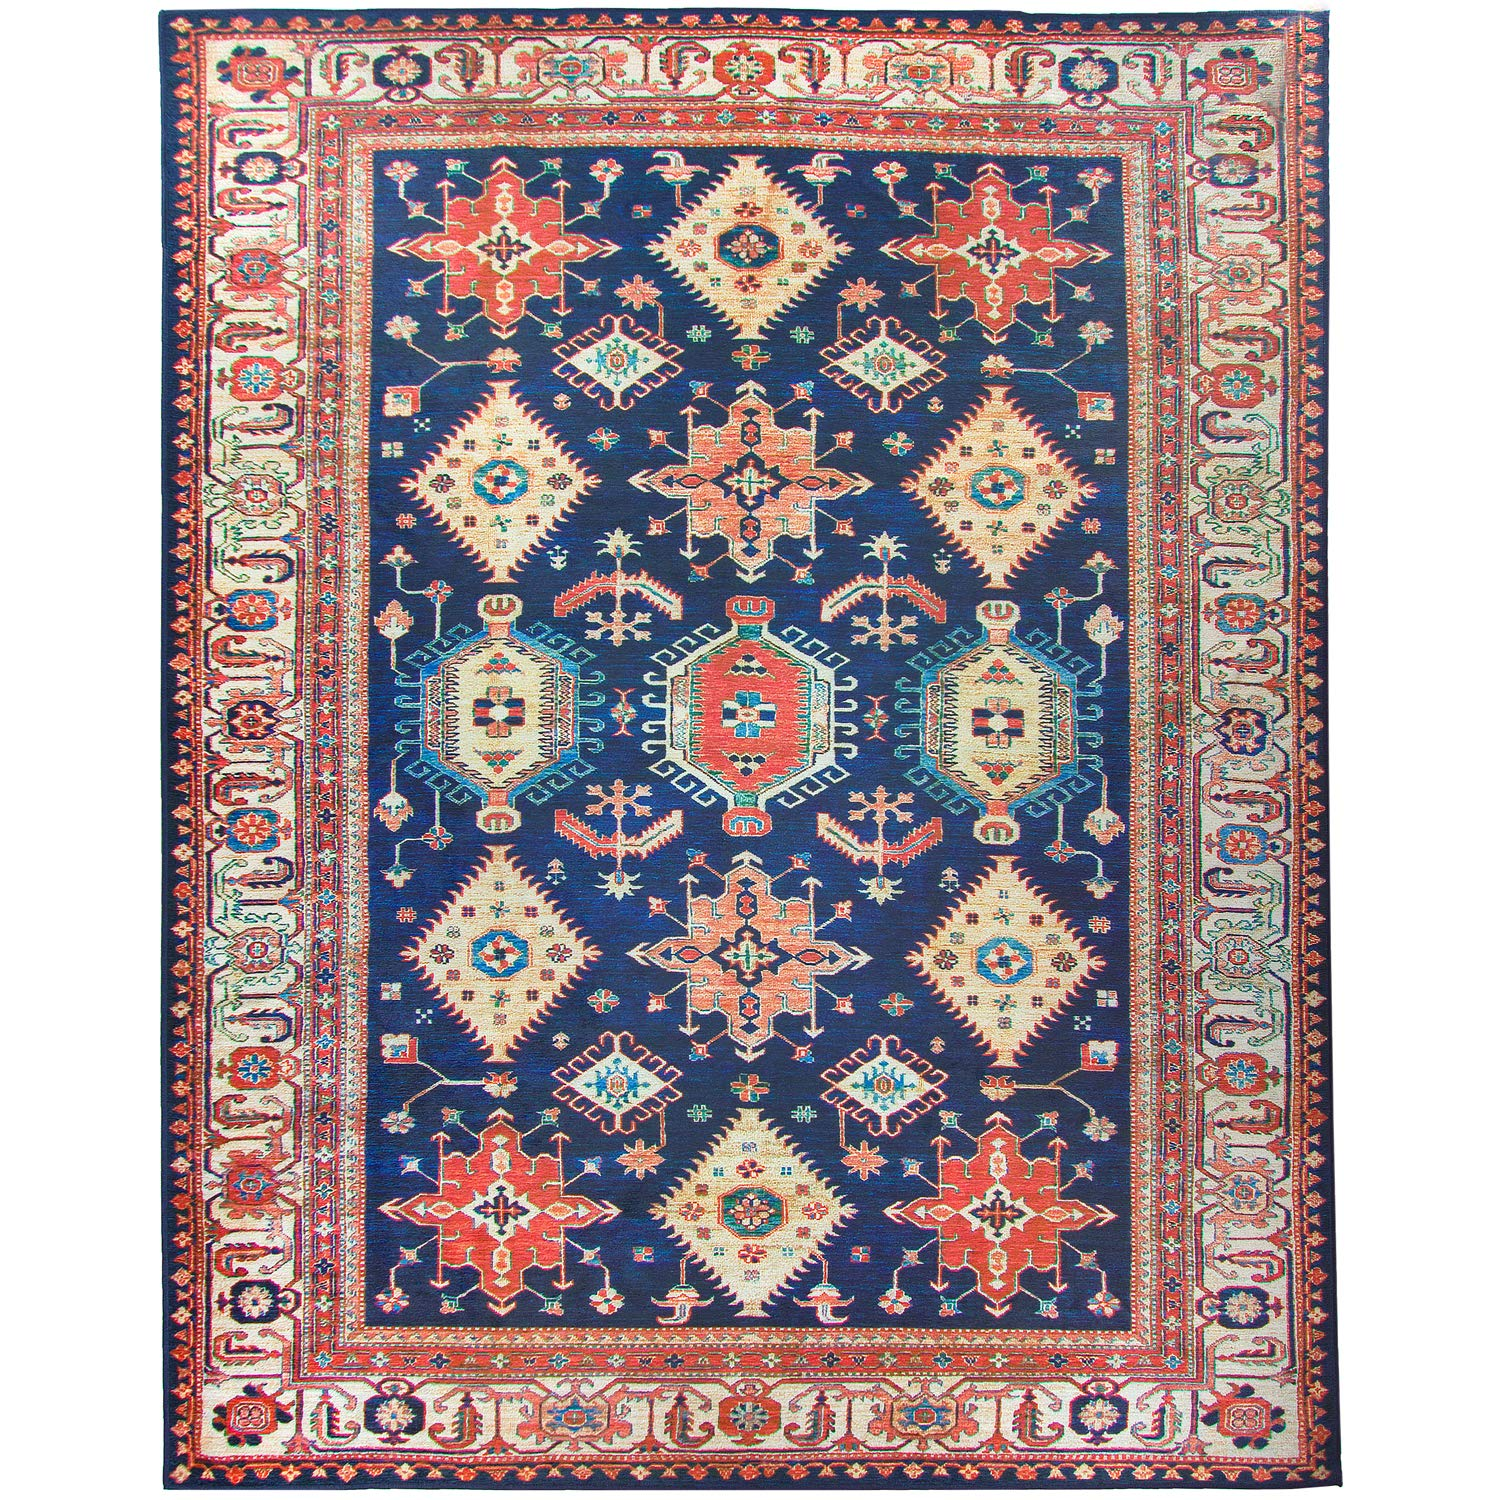 RUGGABLE Washable Stain Resistant Indoor/Outdoor, Kids, Pets, and Dog Friendly Area Rug 8'x10' Noor Sapphire